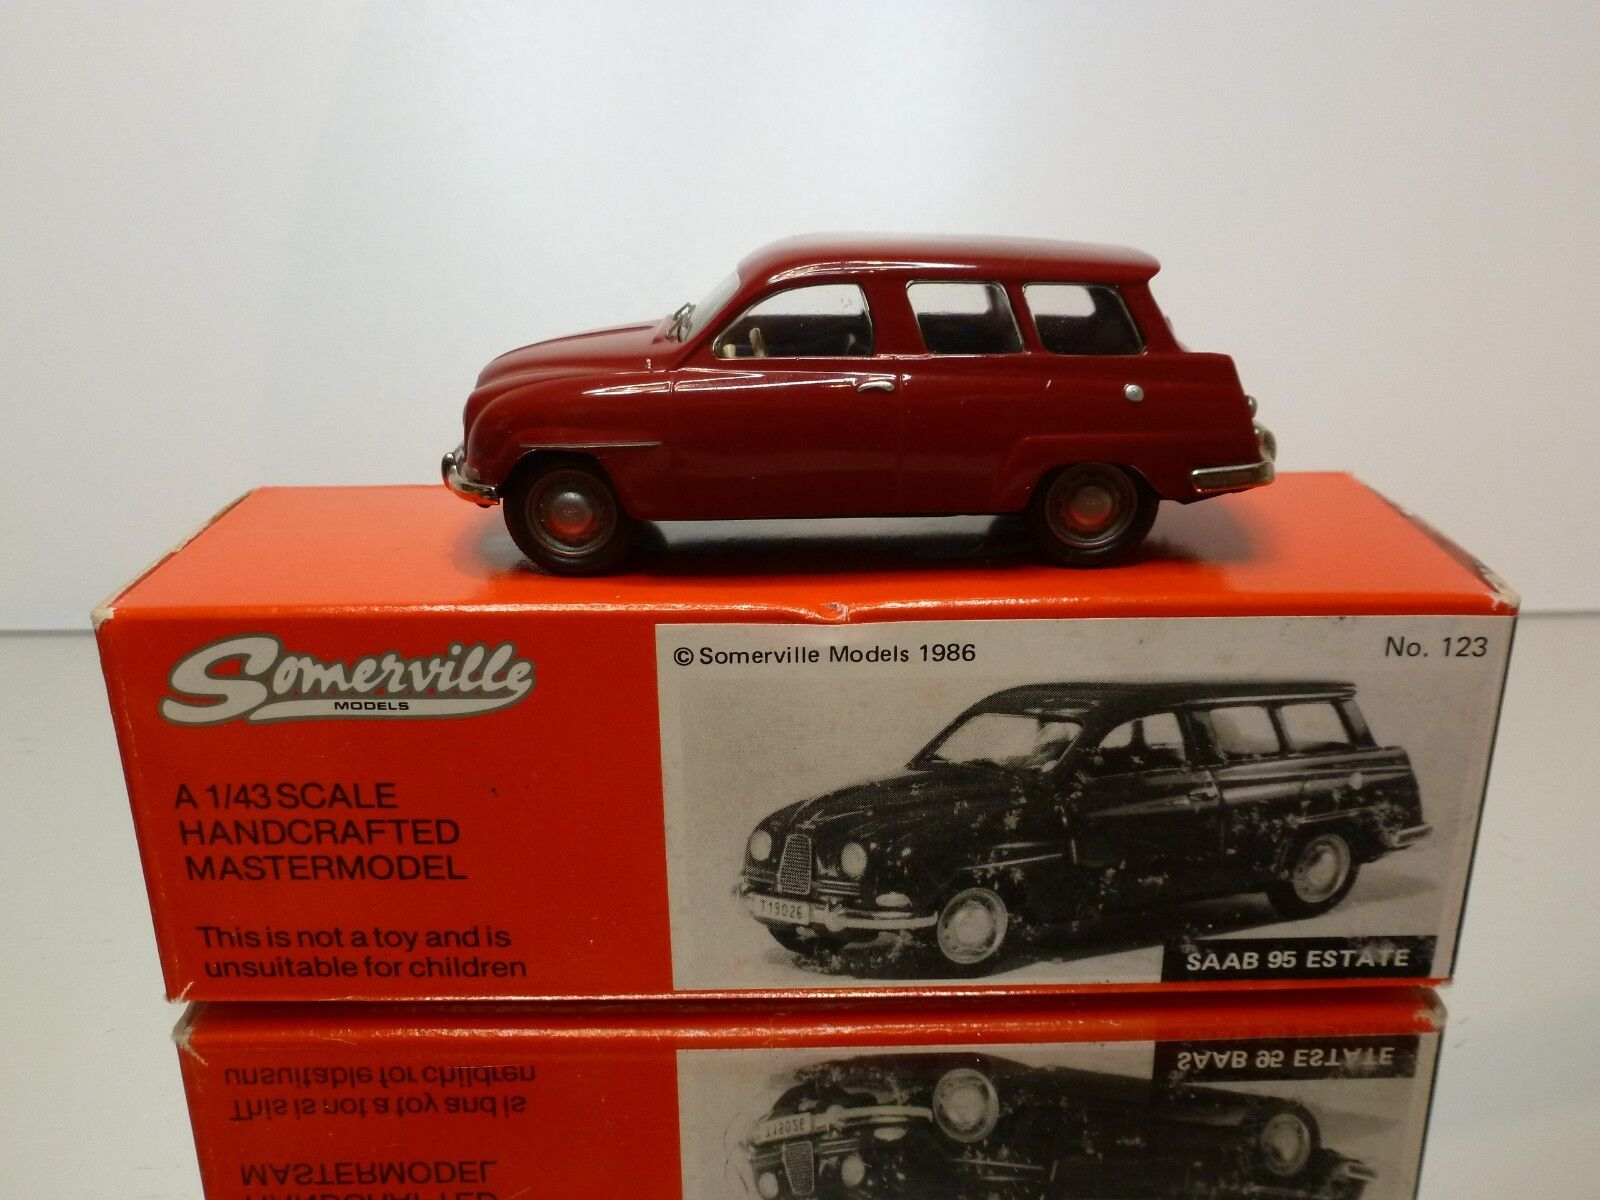 SOMMERVILLE 123 HANDCRAFTED SAAB 95 ESTATE '61- rouge 1 43 RARE - VERY GOOD IN BOX